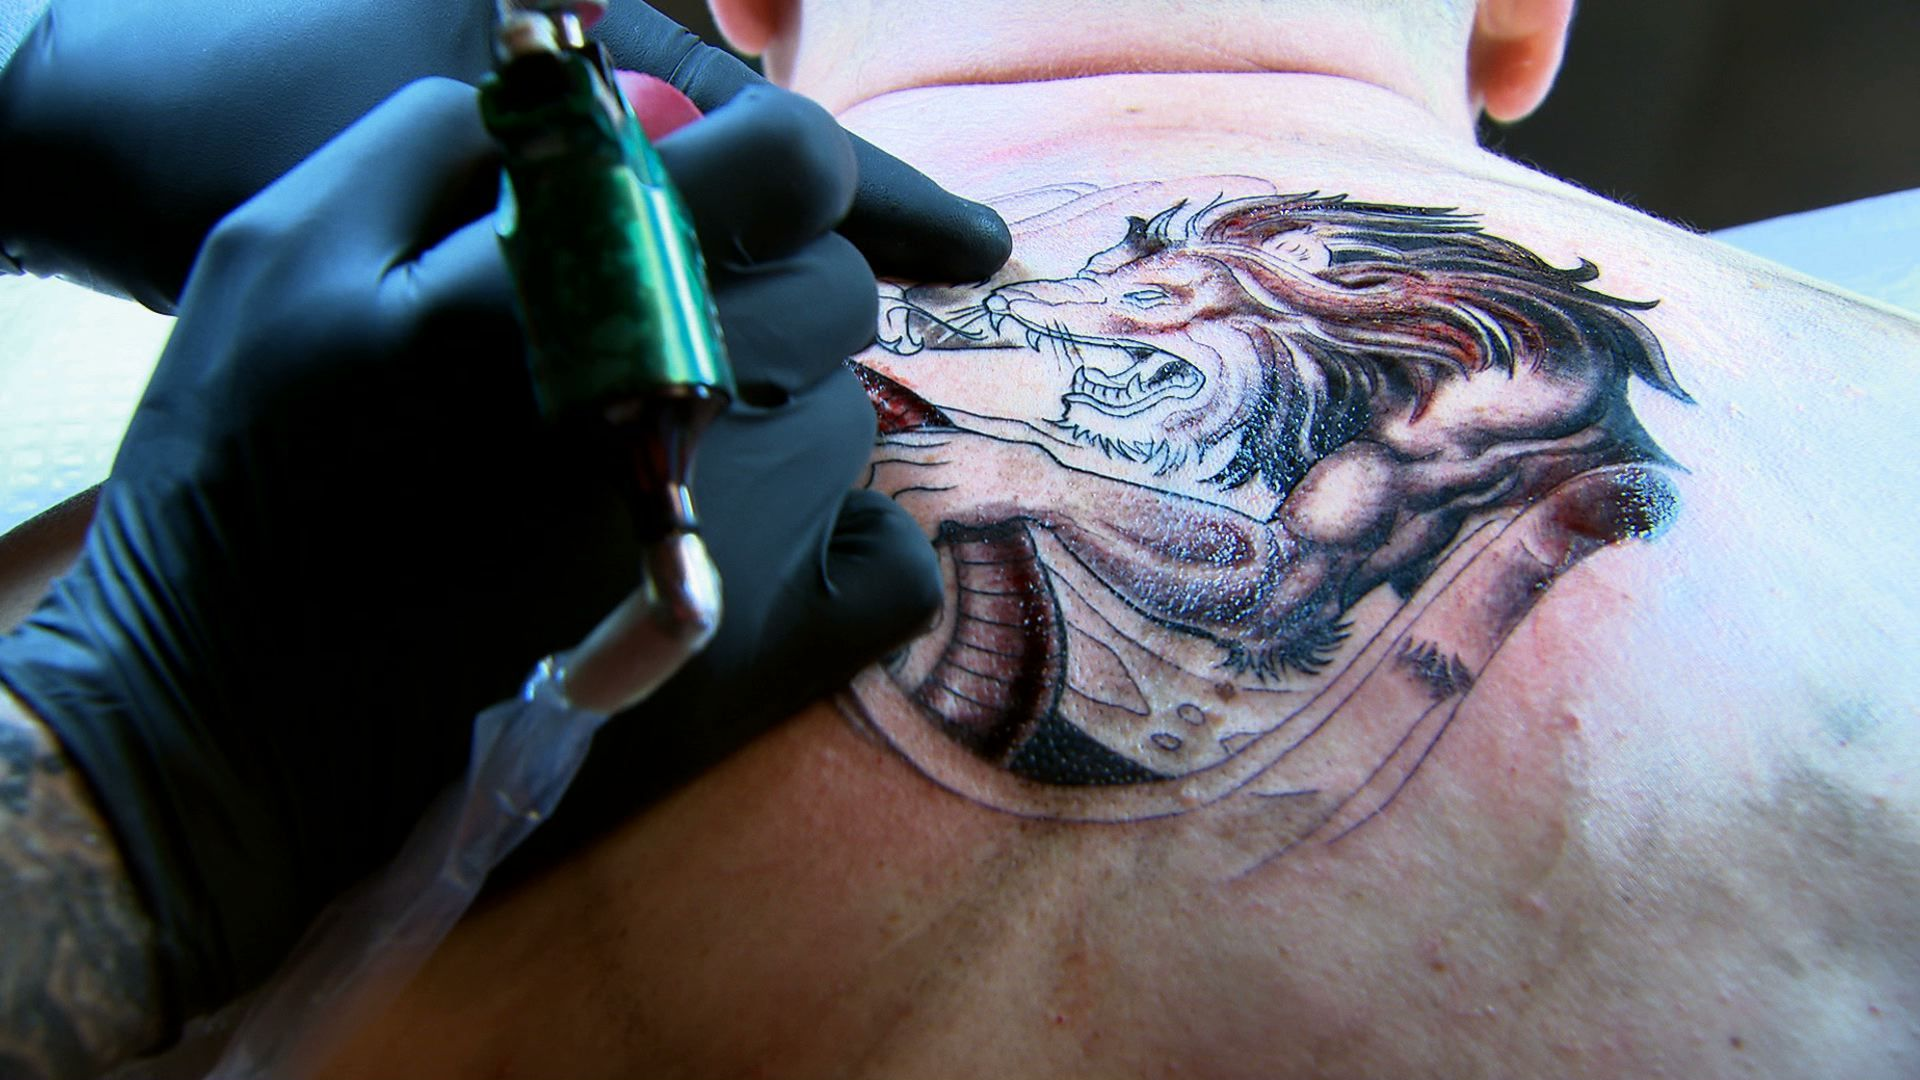 Ink master season 9 ep 13 sell out full episode for Tattoo girls full episodes